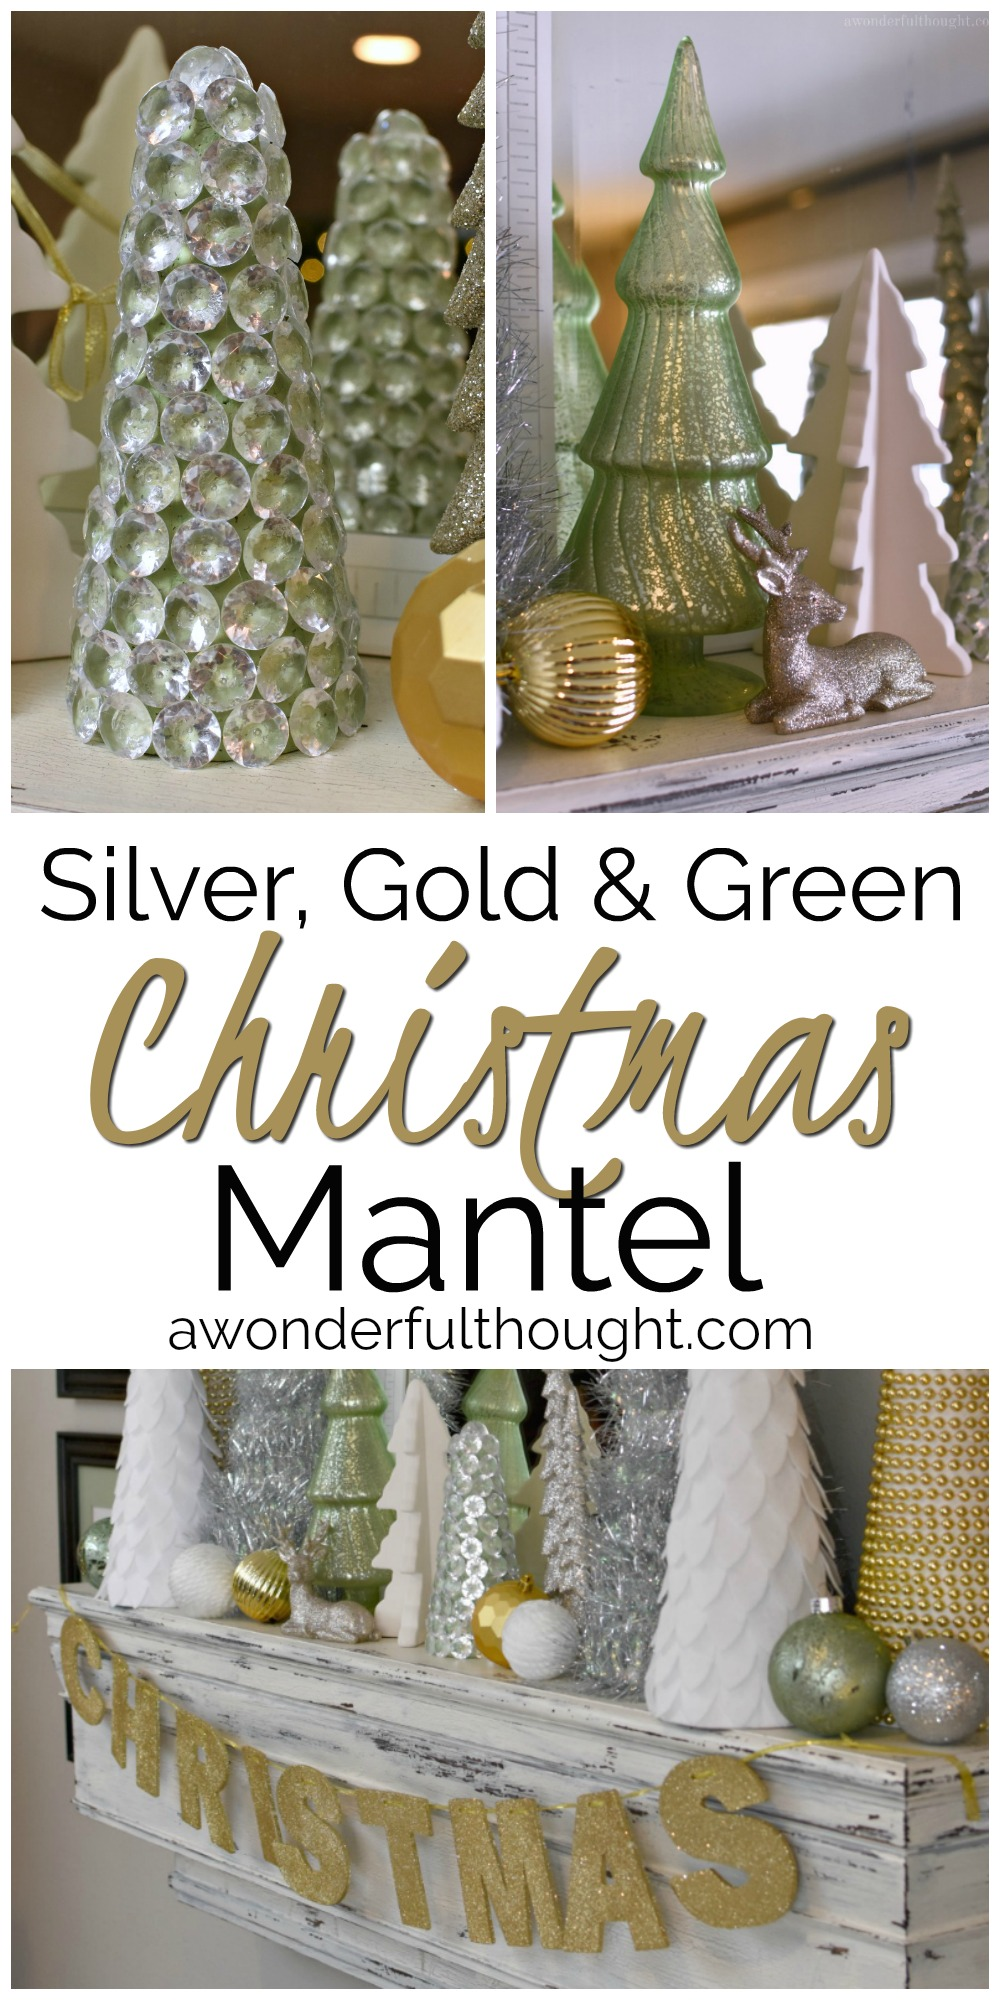 Silver, Gold and Green Christmas Mantel #christmasmantel #christmasdecor #christmasmantelideas #awonderfulthought